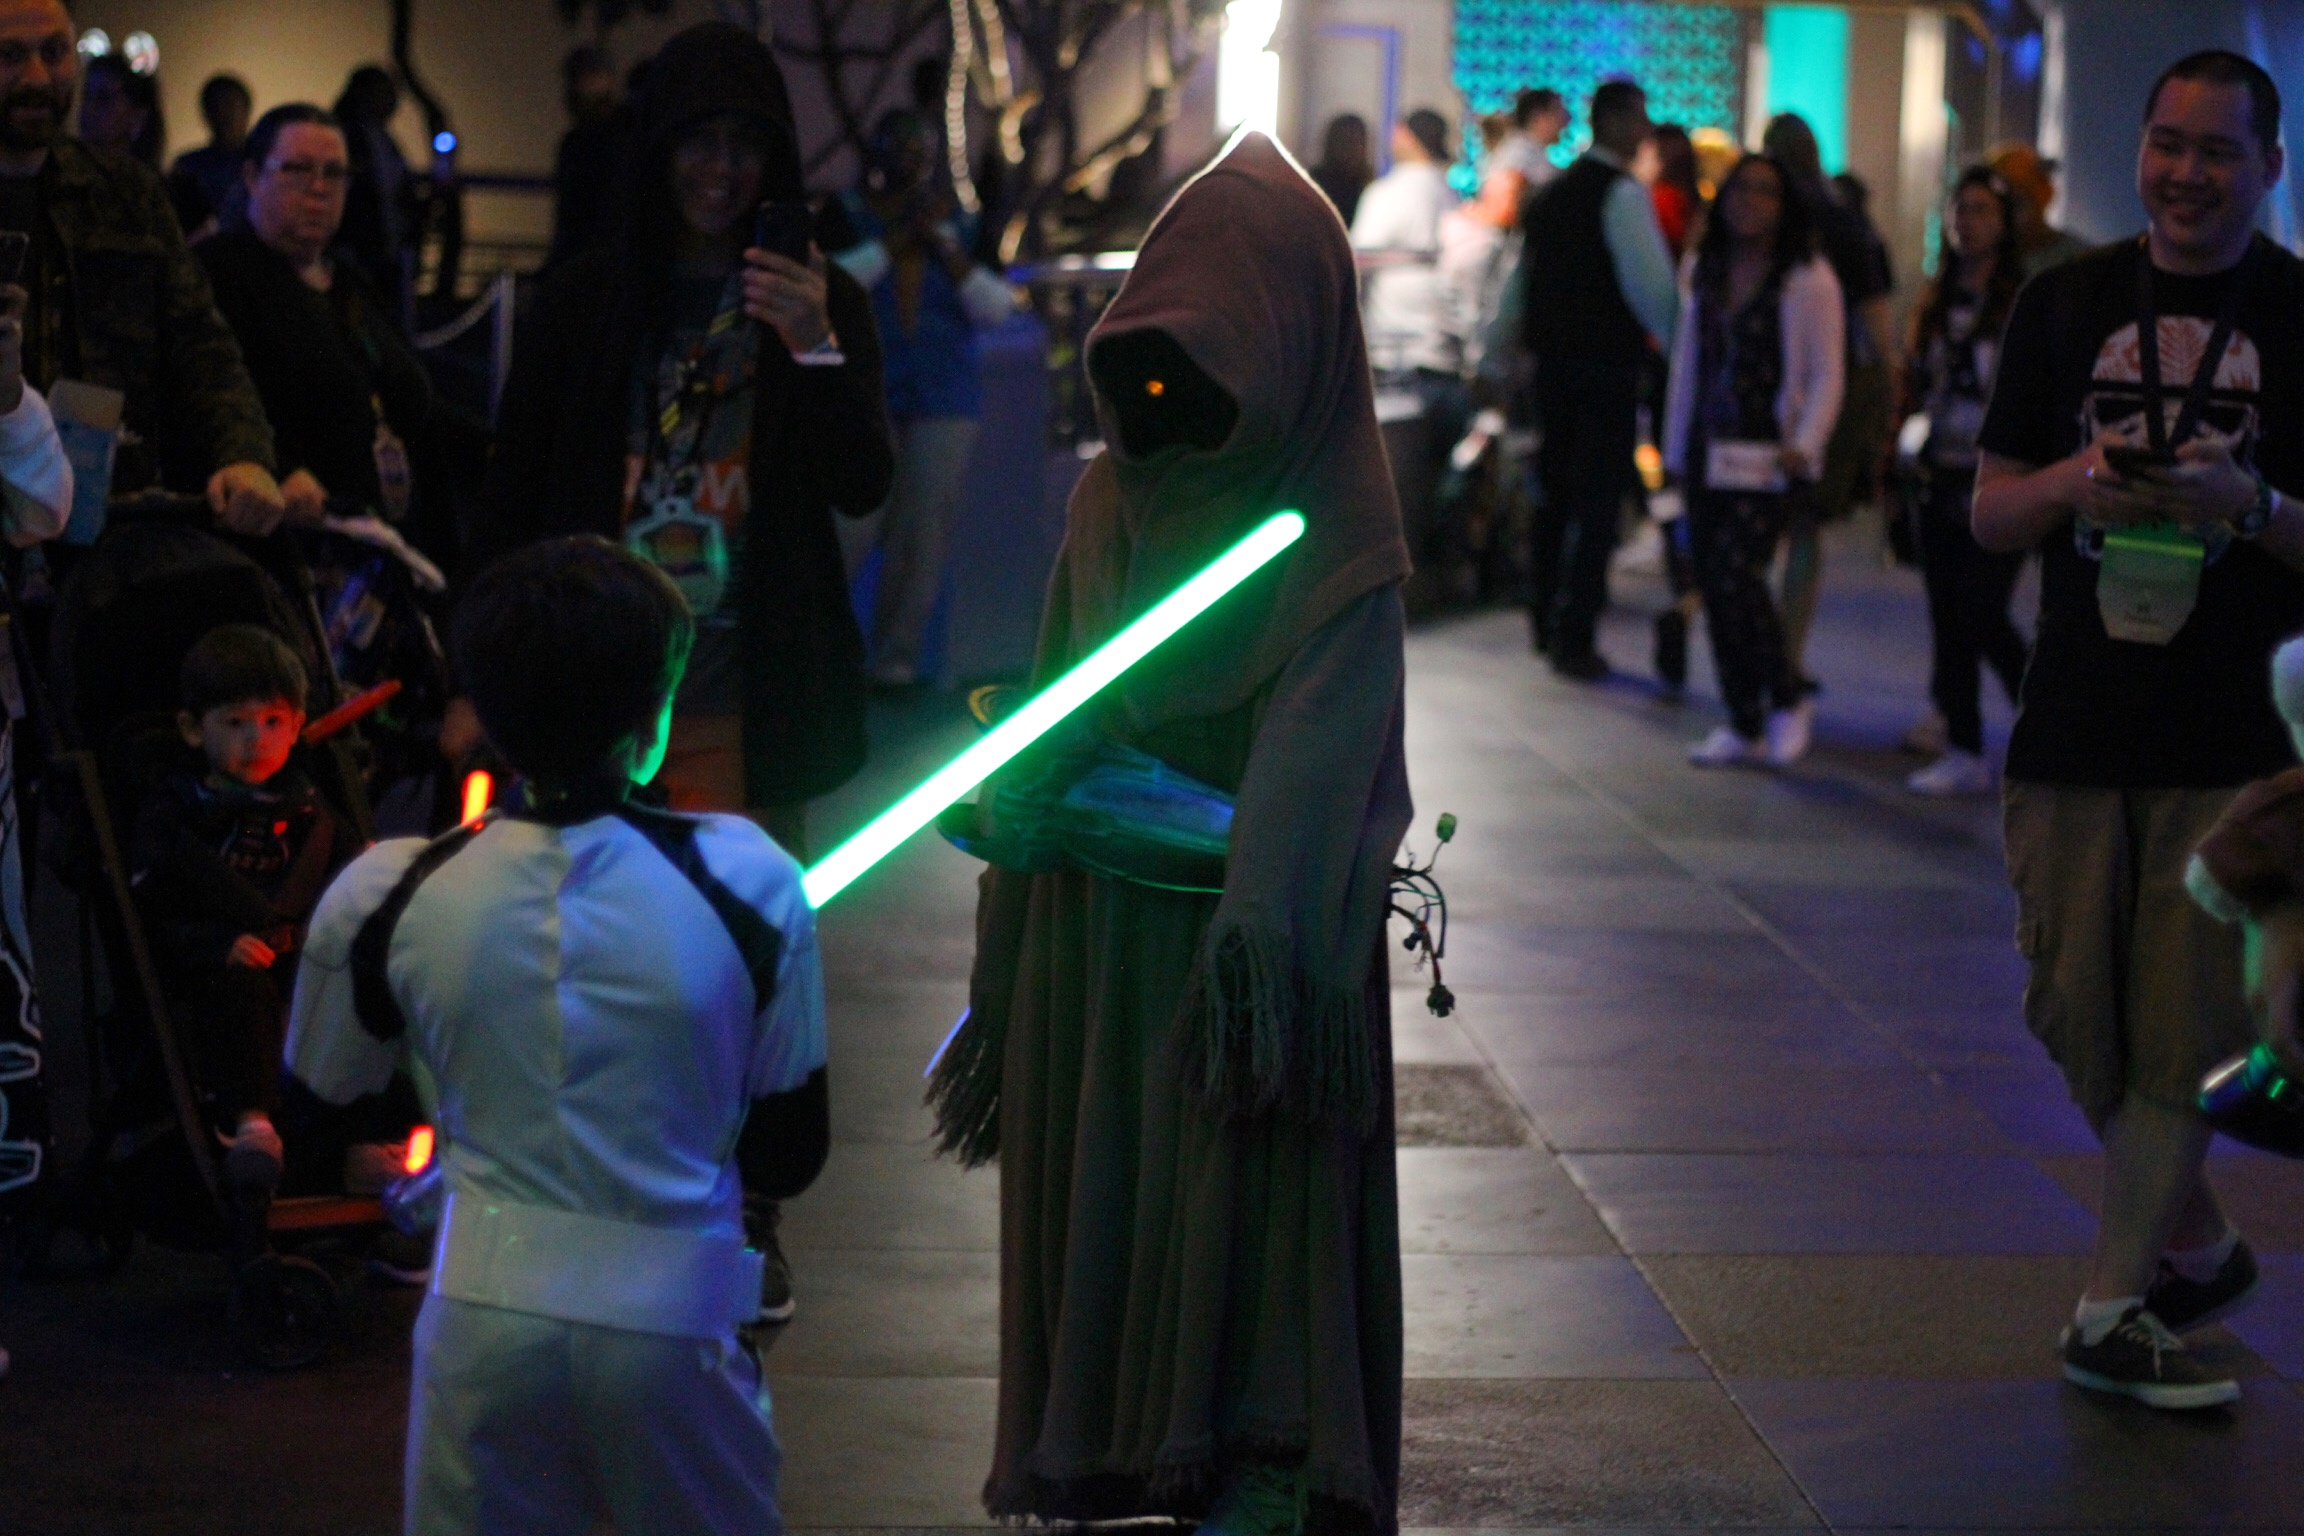 The Most Unique Experiences Come From a Galaxy Far Far Away at Star Wars Nite